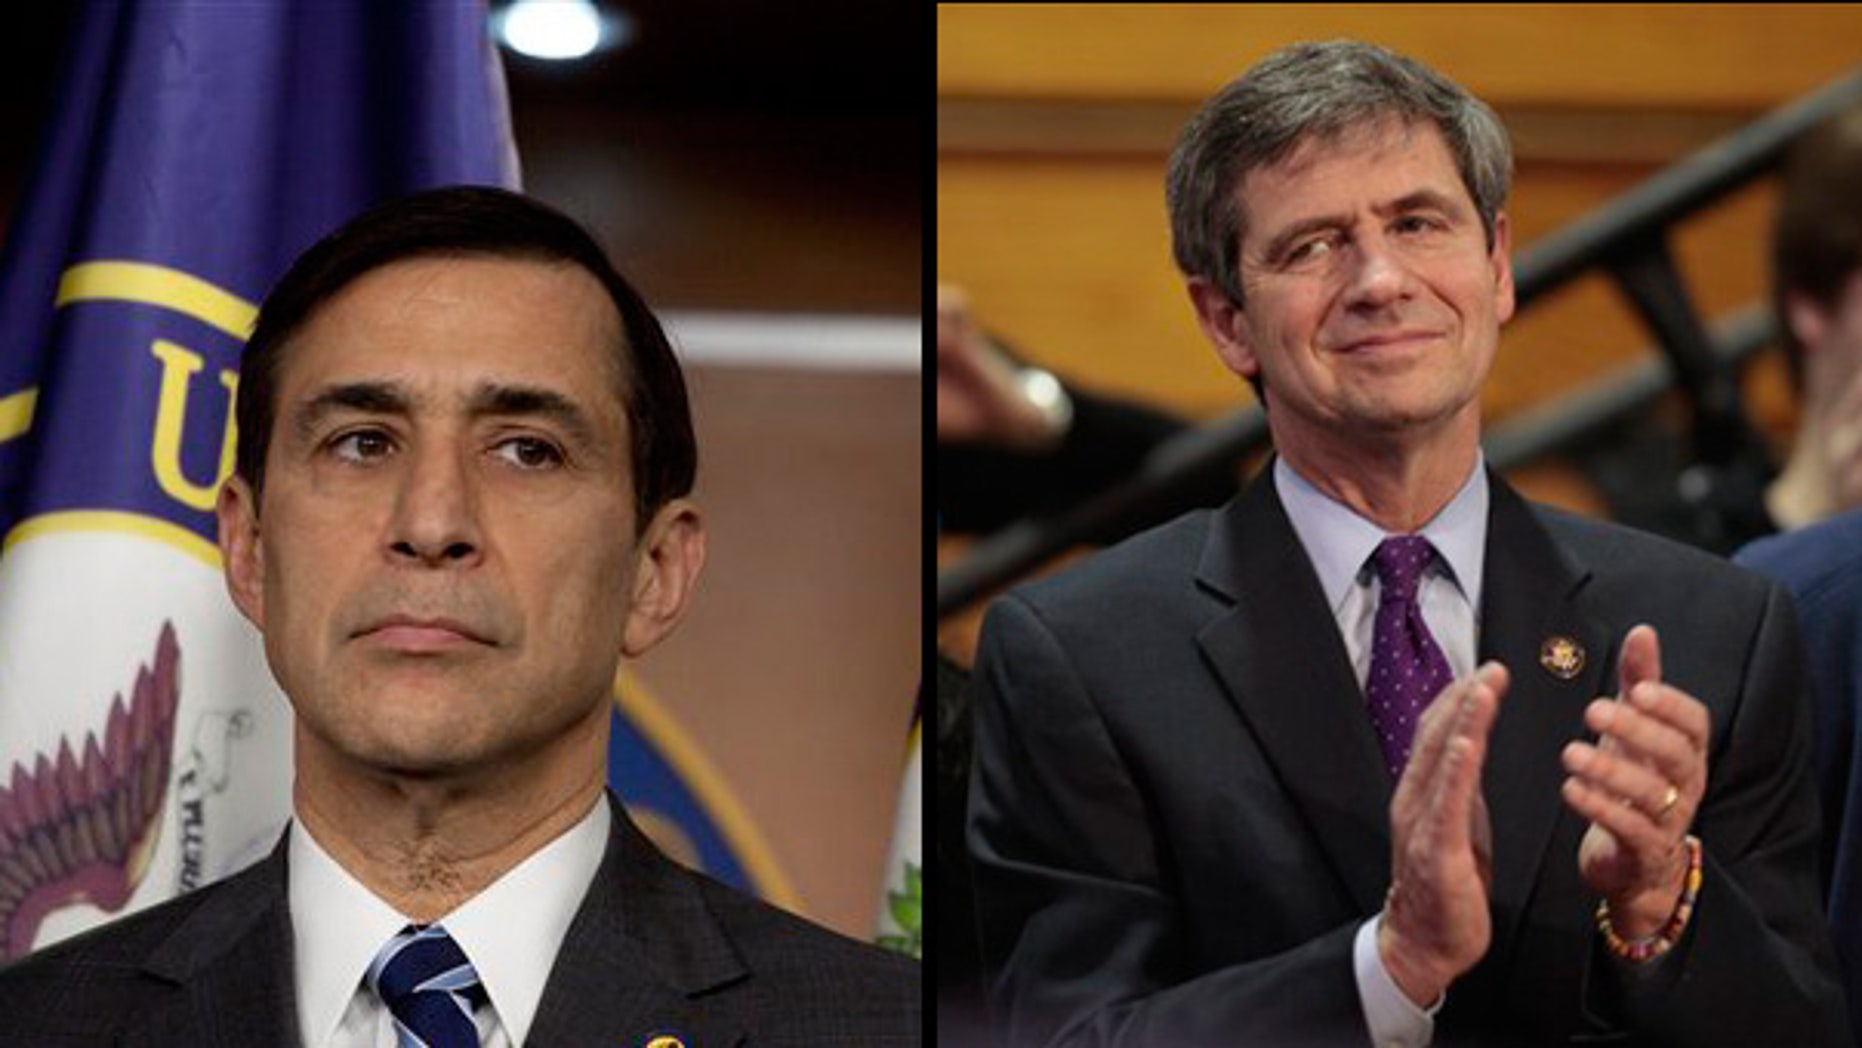 """Rep. Darrell Issa (r) said Tuesday that Rep. Joe Sestak's (l) allegation that the White House offered him a job to coax him out of a race against Arlen Specter could be an """"impeachable"""" offense. (AP)"""